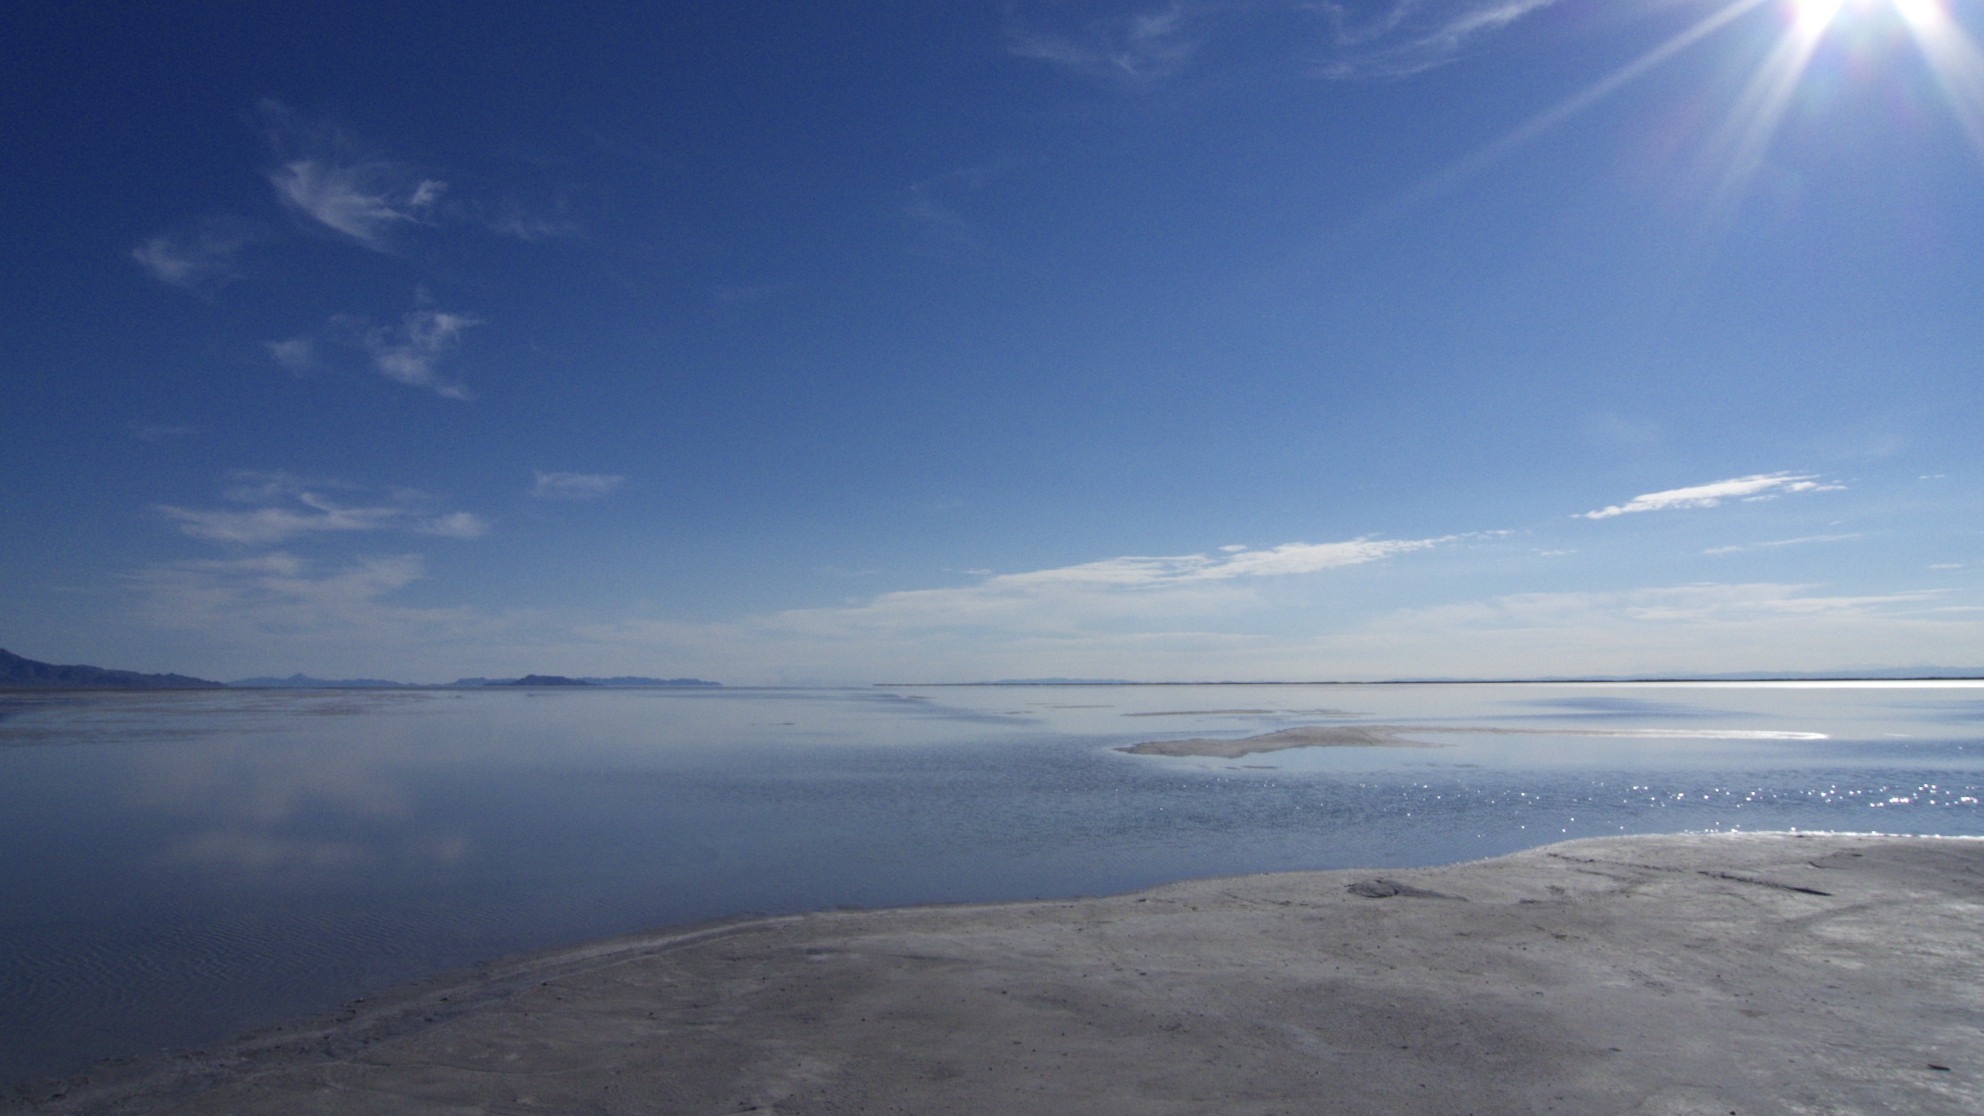 Water on the Bonneville Salt Flats, Wendover, Utah.